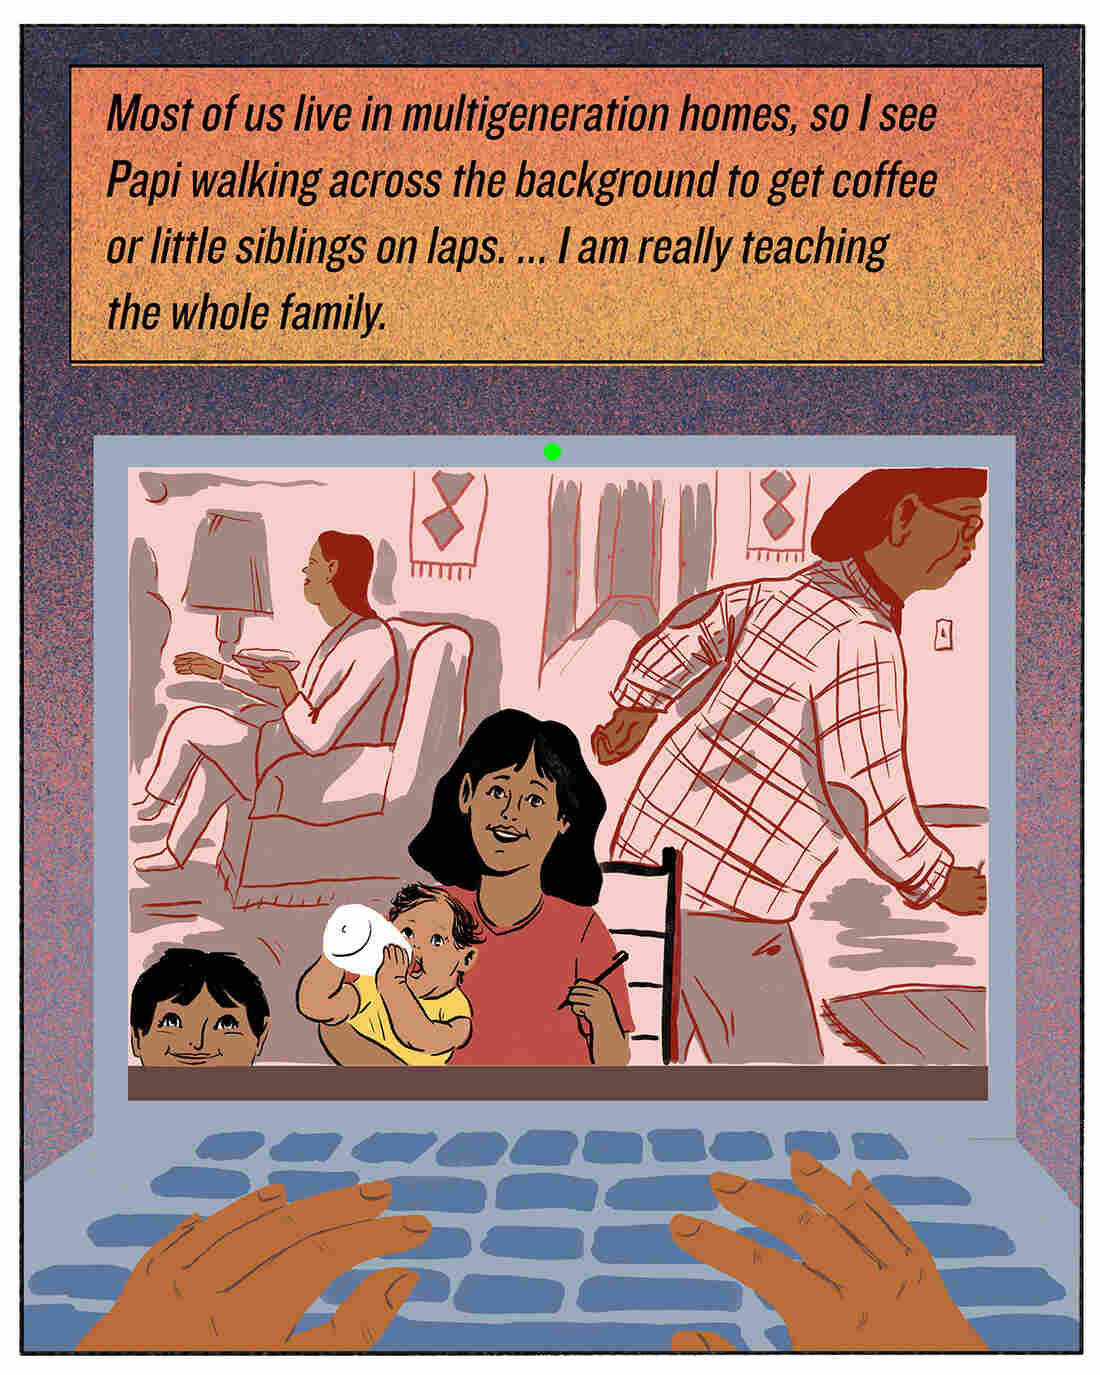 Most of us live in multigeneration homes, so I see Papi walking across the background to get coffee or little siblings on laps. ... I am really teaching the whole family.